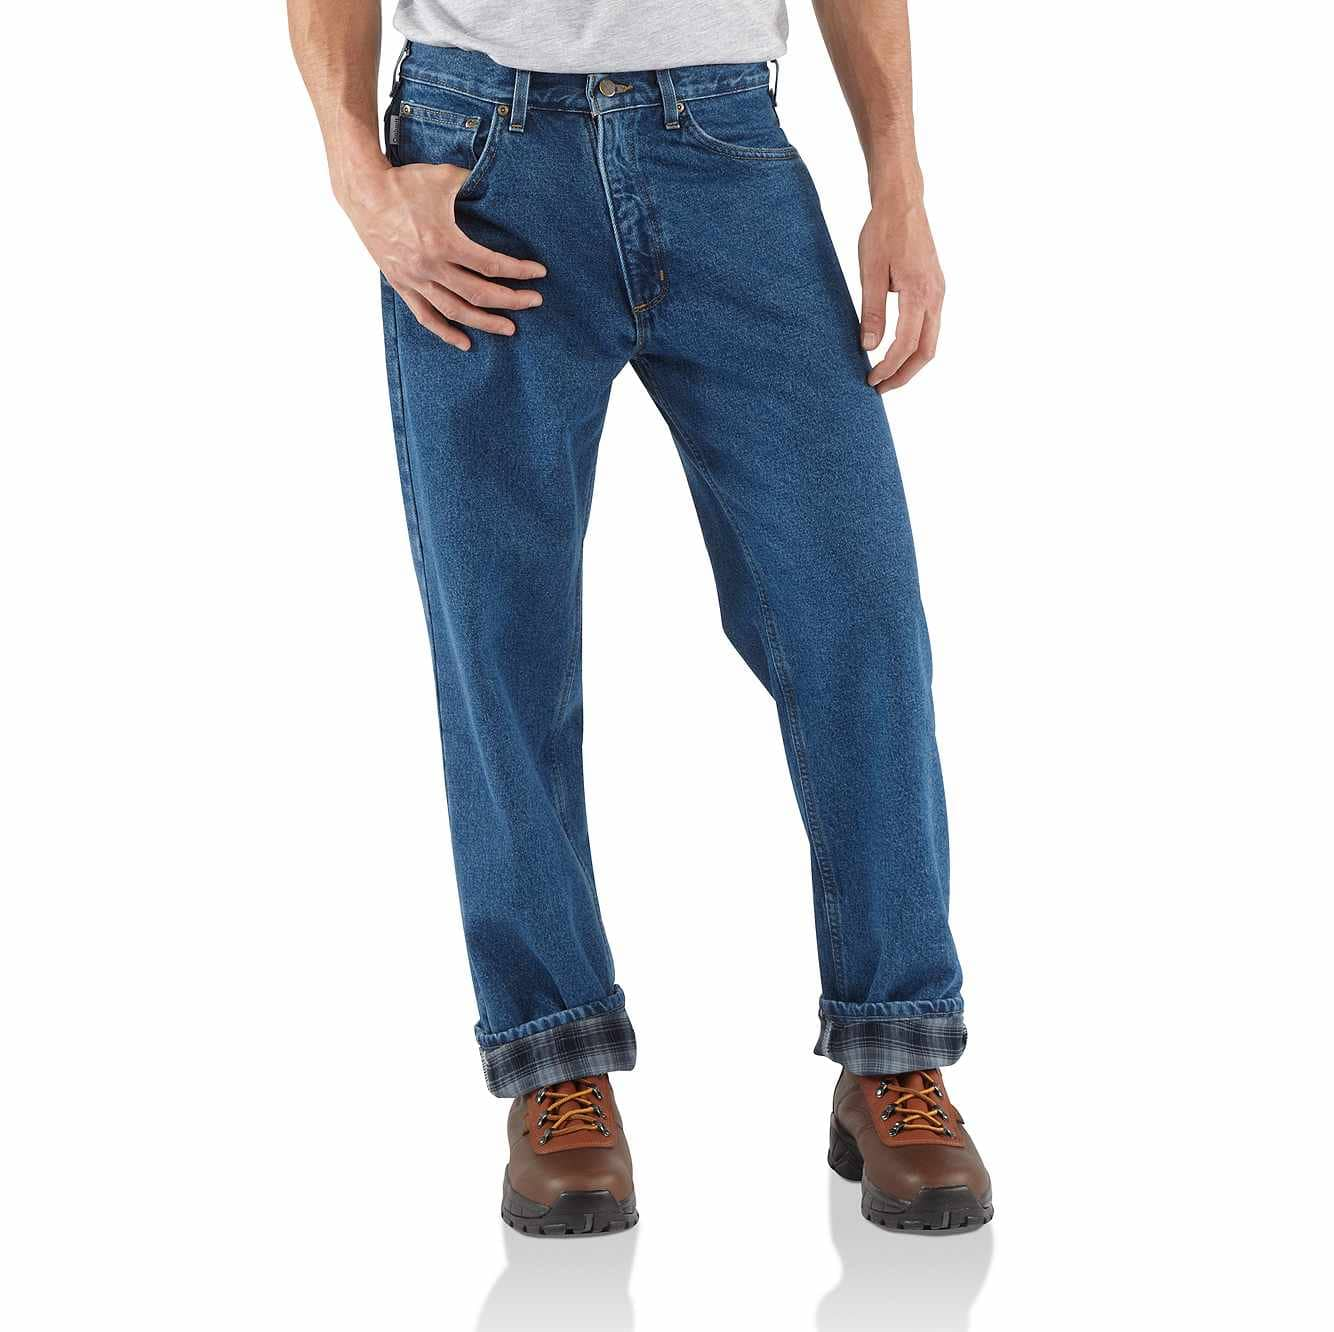 Picture of Relaxed-Fit Straight-Leg Flannel Lined Jean in Darkstone